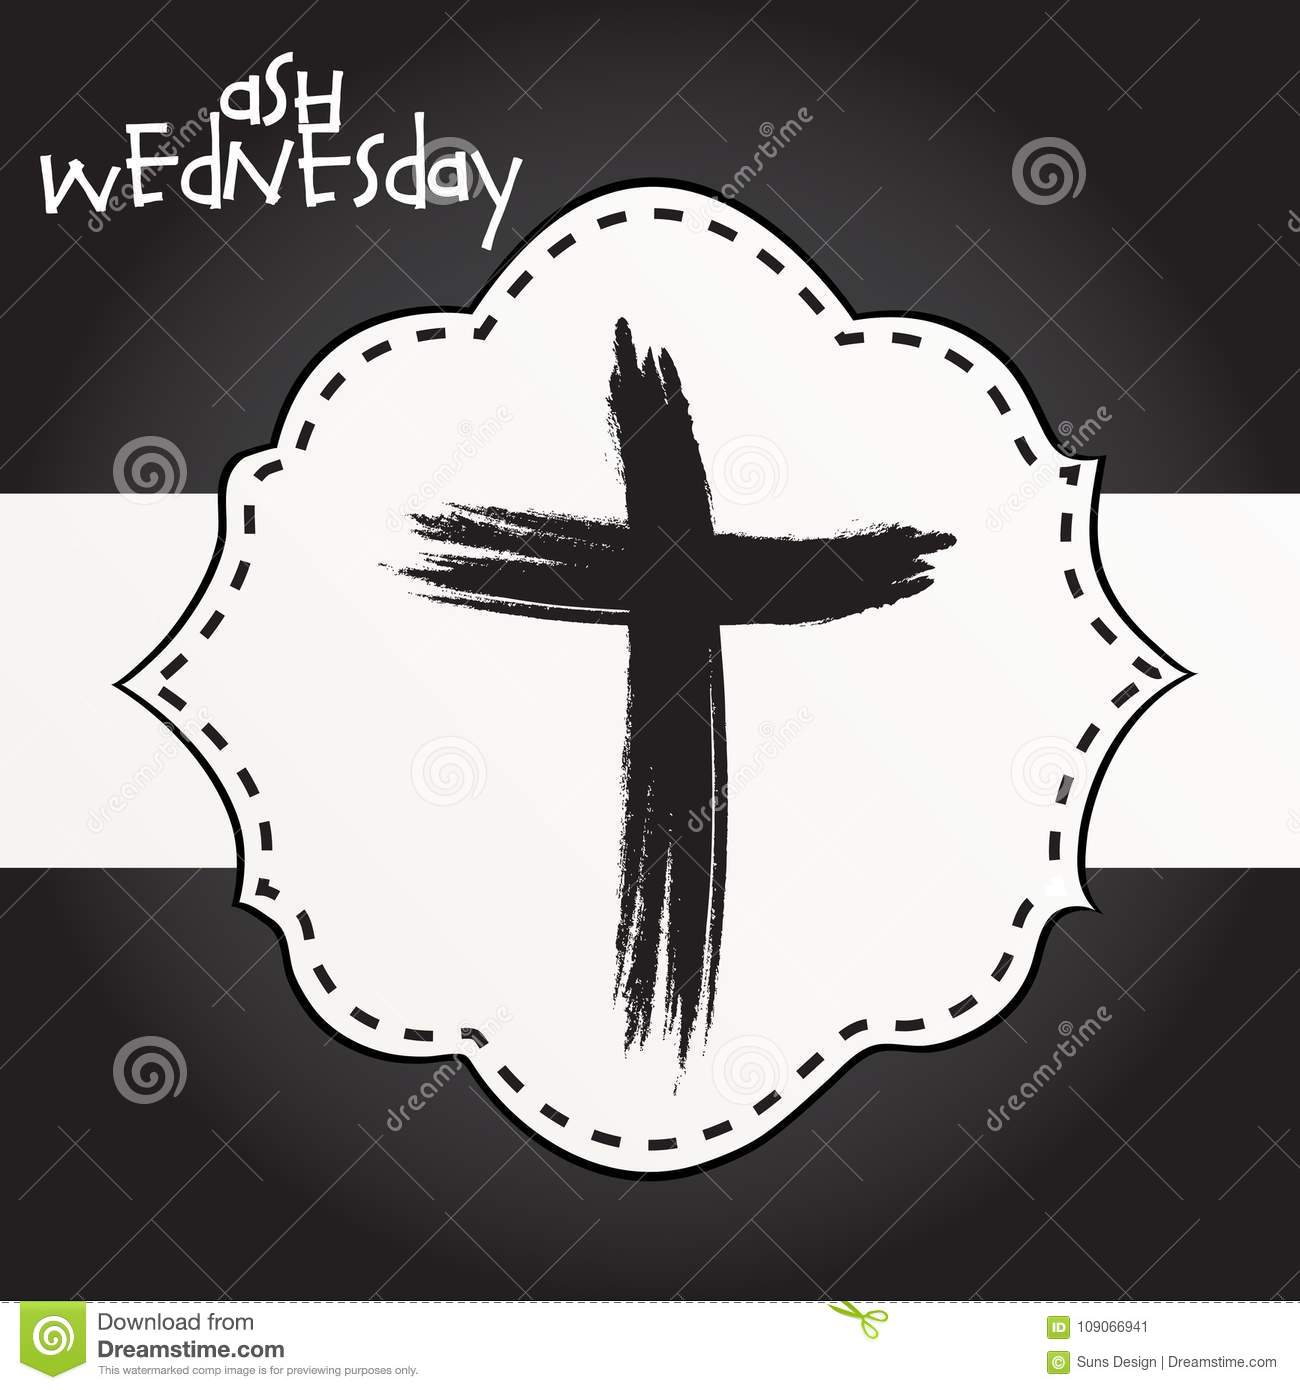 Ash wednesday stock illustration illustration of background ash wednesday background symbol buycottarizona Image collections